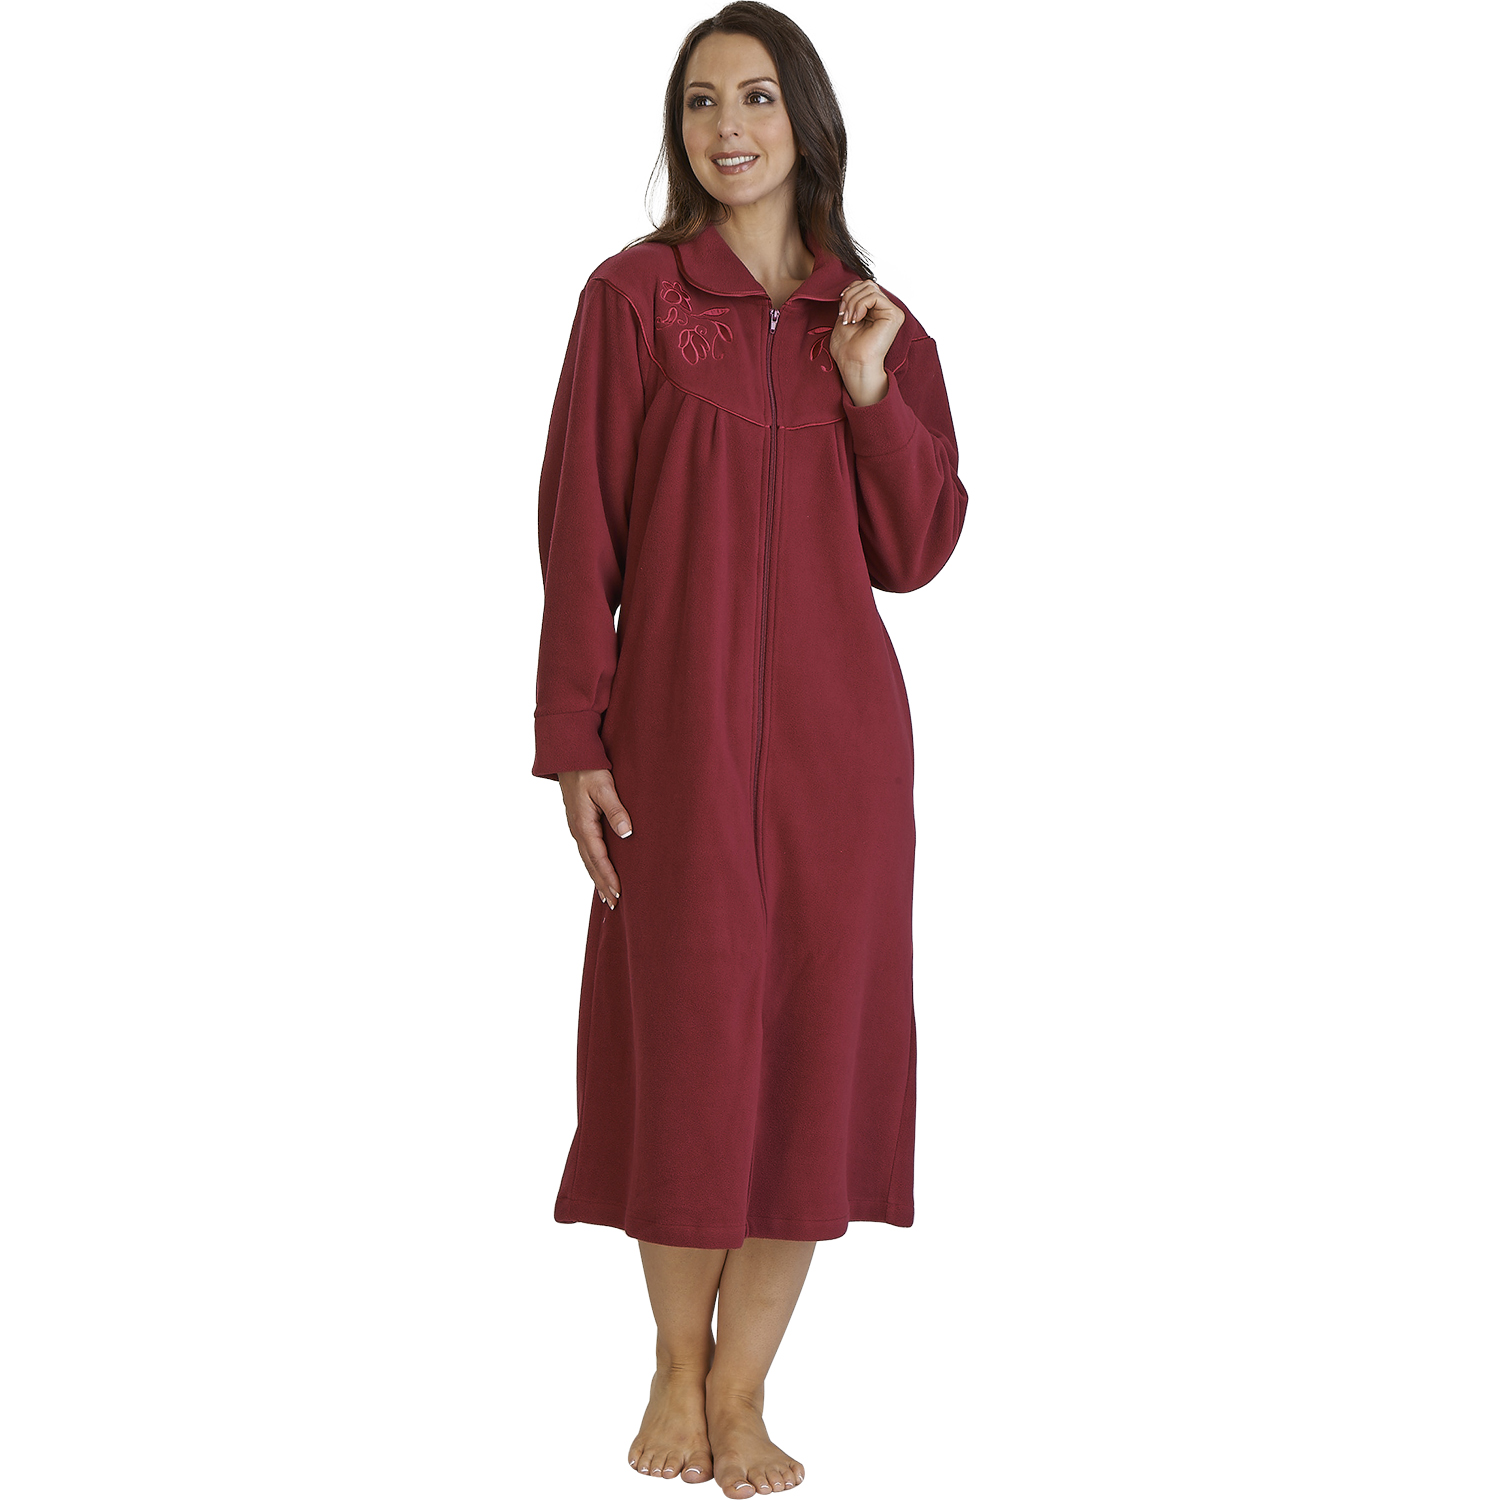 Discover our fabulous range of gowns and wraps and get ready to wrap up warm on those cold evenings! Slip on after showering, or wear during the daytime or evening as a relaxed-fitting, casual garment. Click here to shop.